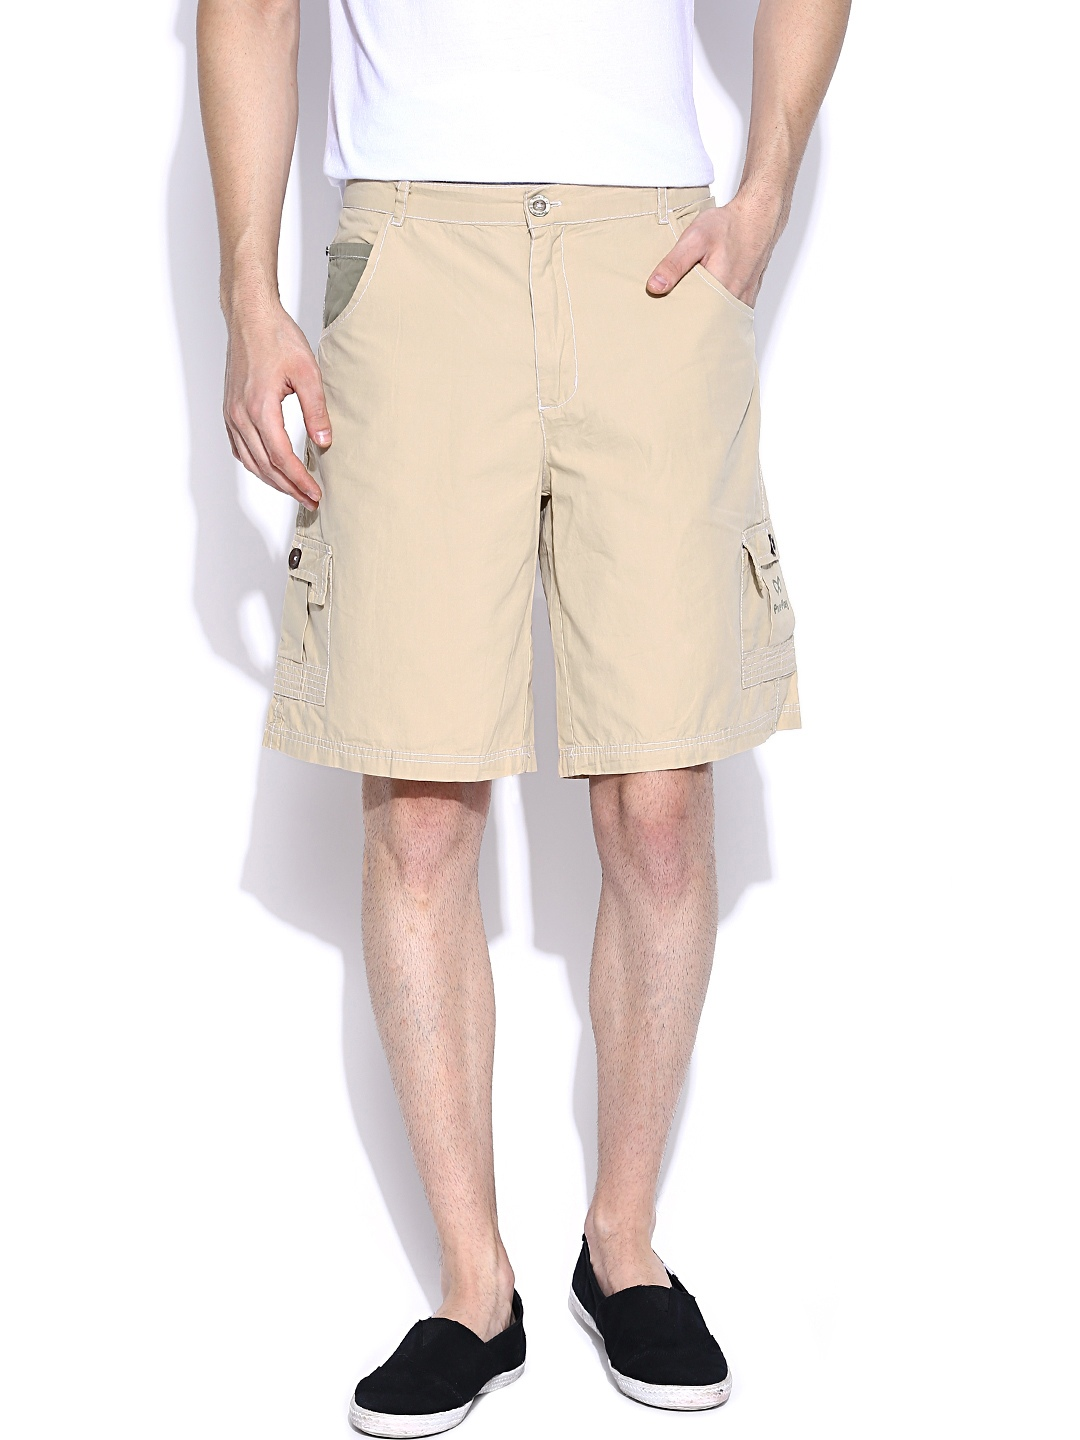 You searched for: beige cargo shorts! Etsy is the home to thousands of handmade, vintage, and one-of-a-kind products and gifts related to your search. No matter what you're looking for or where you are in the world, our global marketplace of sellers can help you find unique and affordable options. Let's get started!